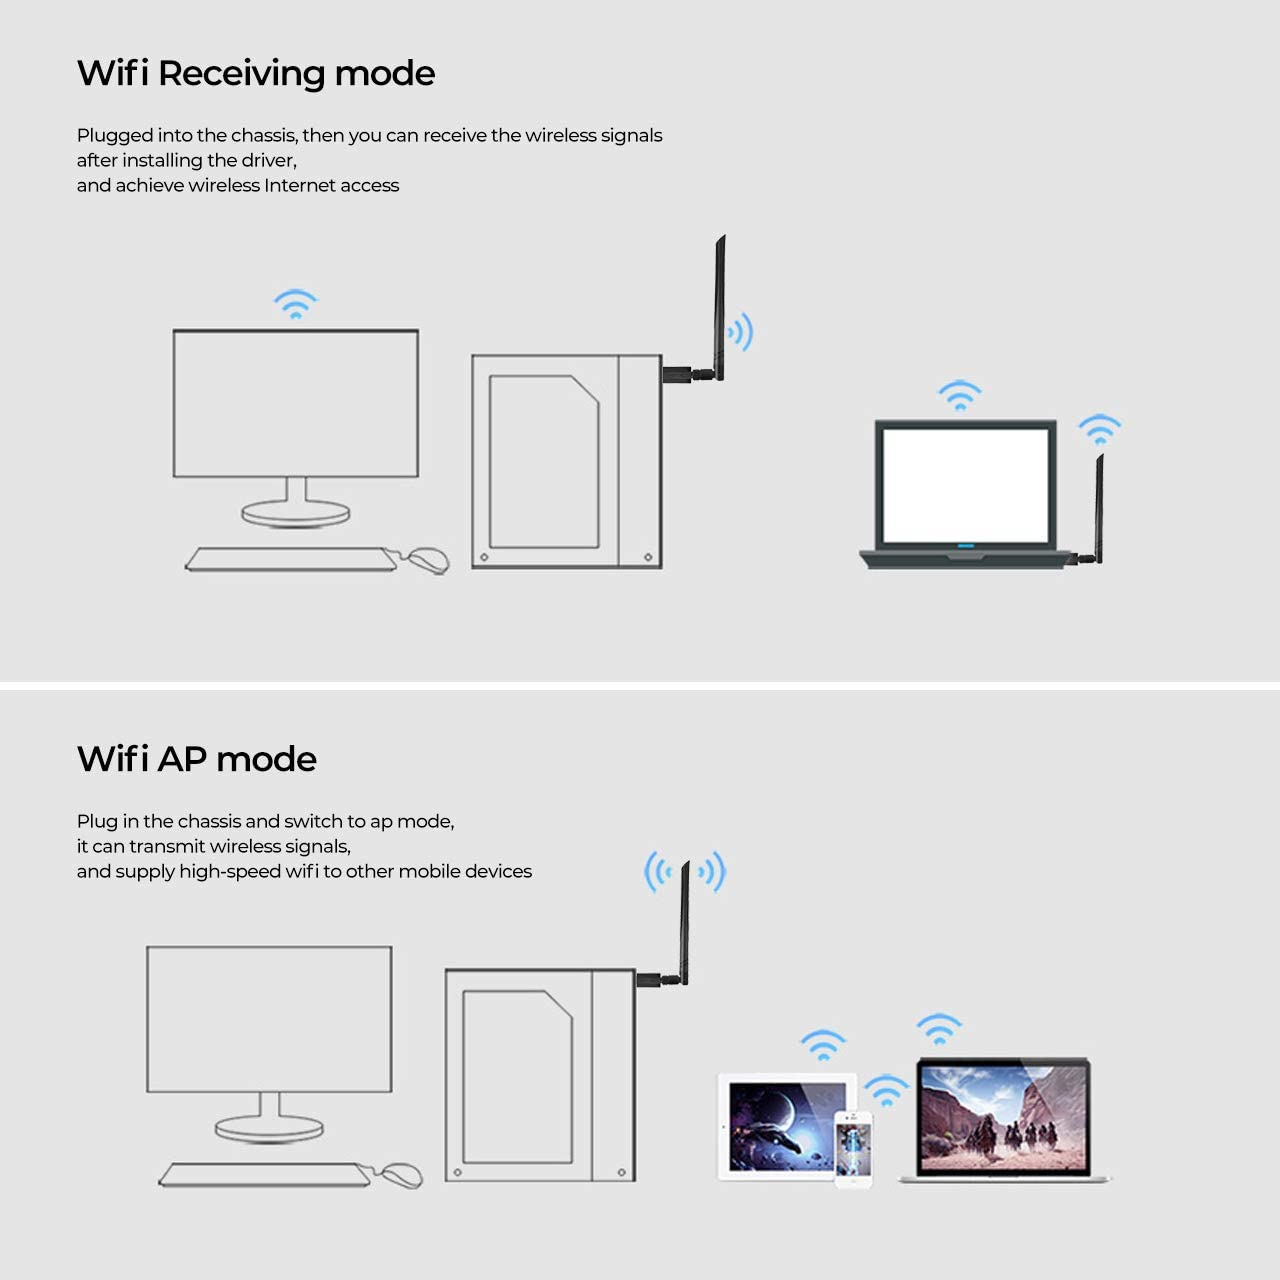 USB WiFi Adapter for PC 1200Mbps Dual Band 2.4GHz//300Mbps 5.8GHz//867Mbps High Gain 5dBi Antennas USB 3.0 Wireless Network Adapter for Desktop Laptop with Windows 10//8//8.1//7//Vista//XP//Mac 10.6-10.14